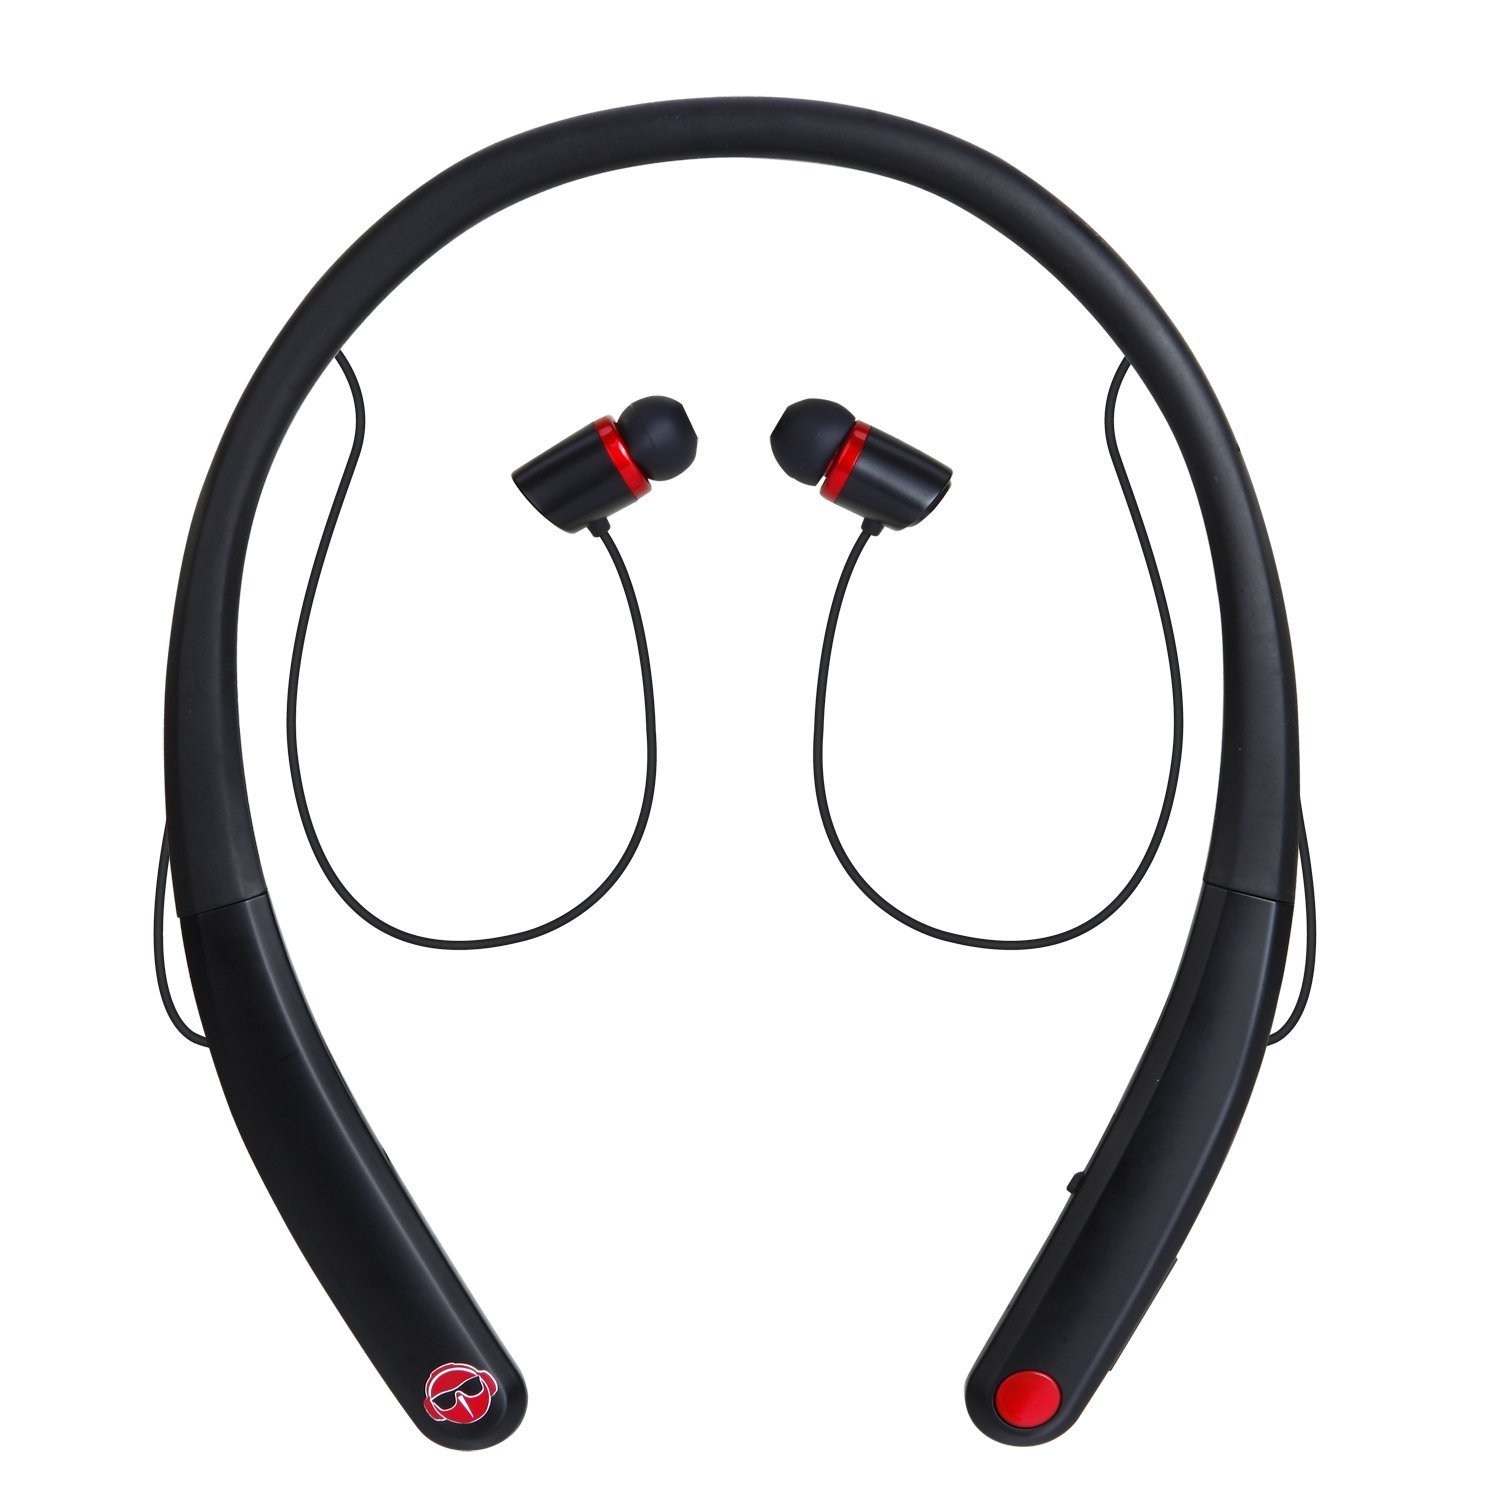 Hulorry Galaxy S9+ Sport Wireless Headset, Wireless Bluetooth Sports Earphones w/Mic Noise Cancelling HD Stereo Headset Universal Fit for Gym Running Workout for All Bluetooth Devices